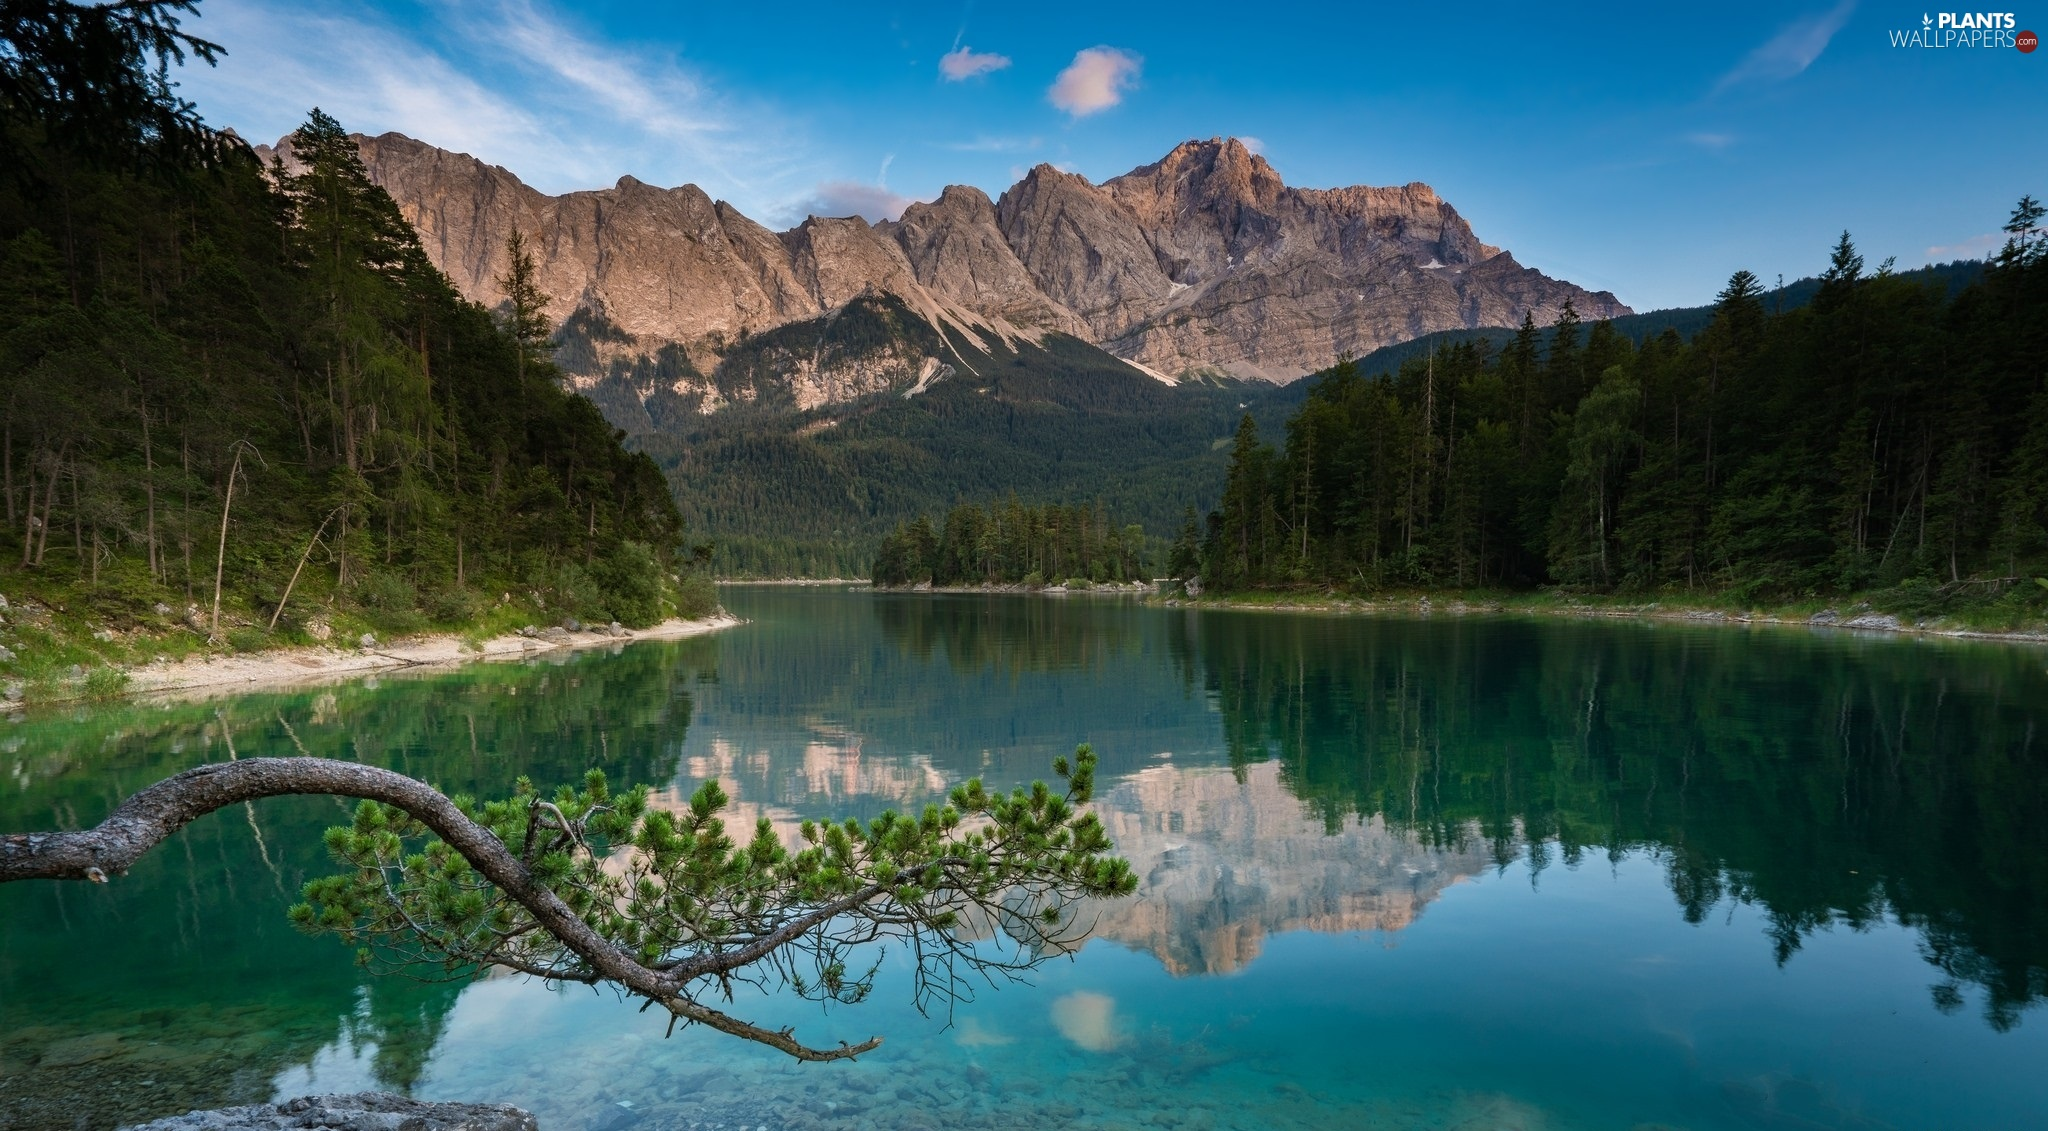 trees, Mountains, reflection, branch, viewes, lake